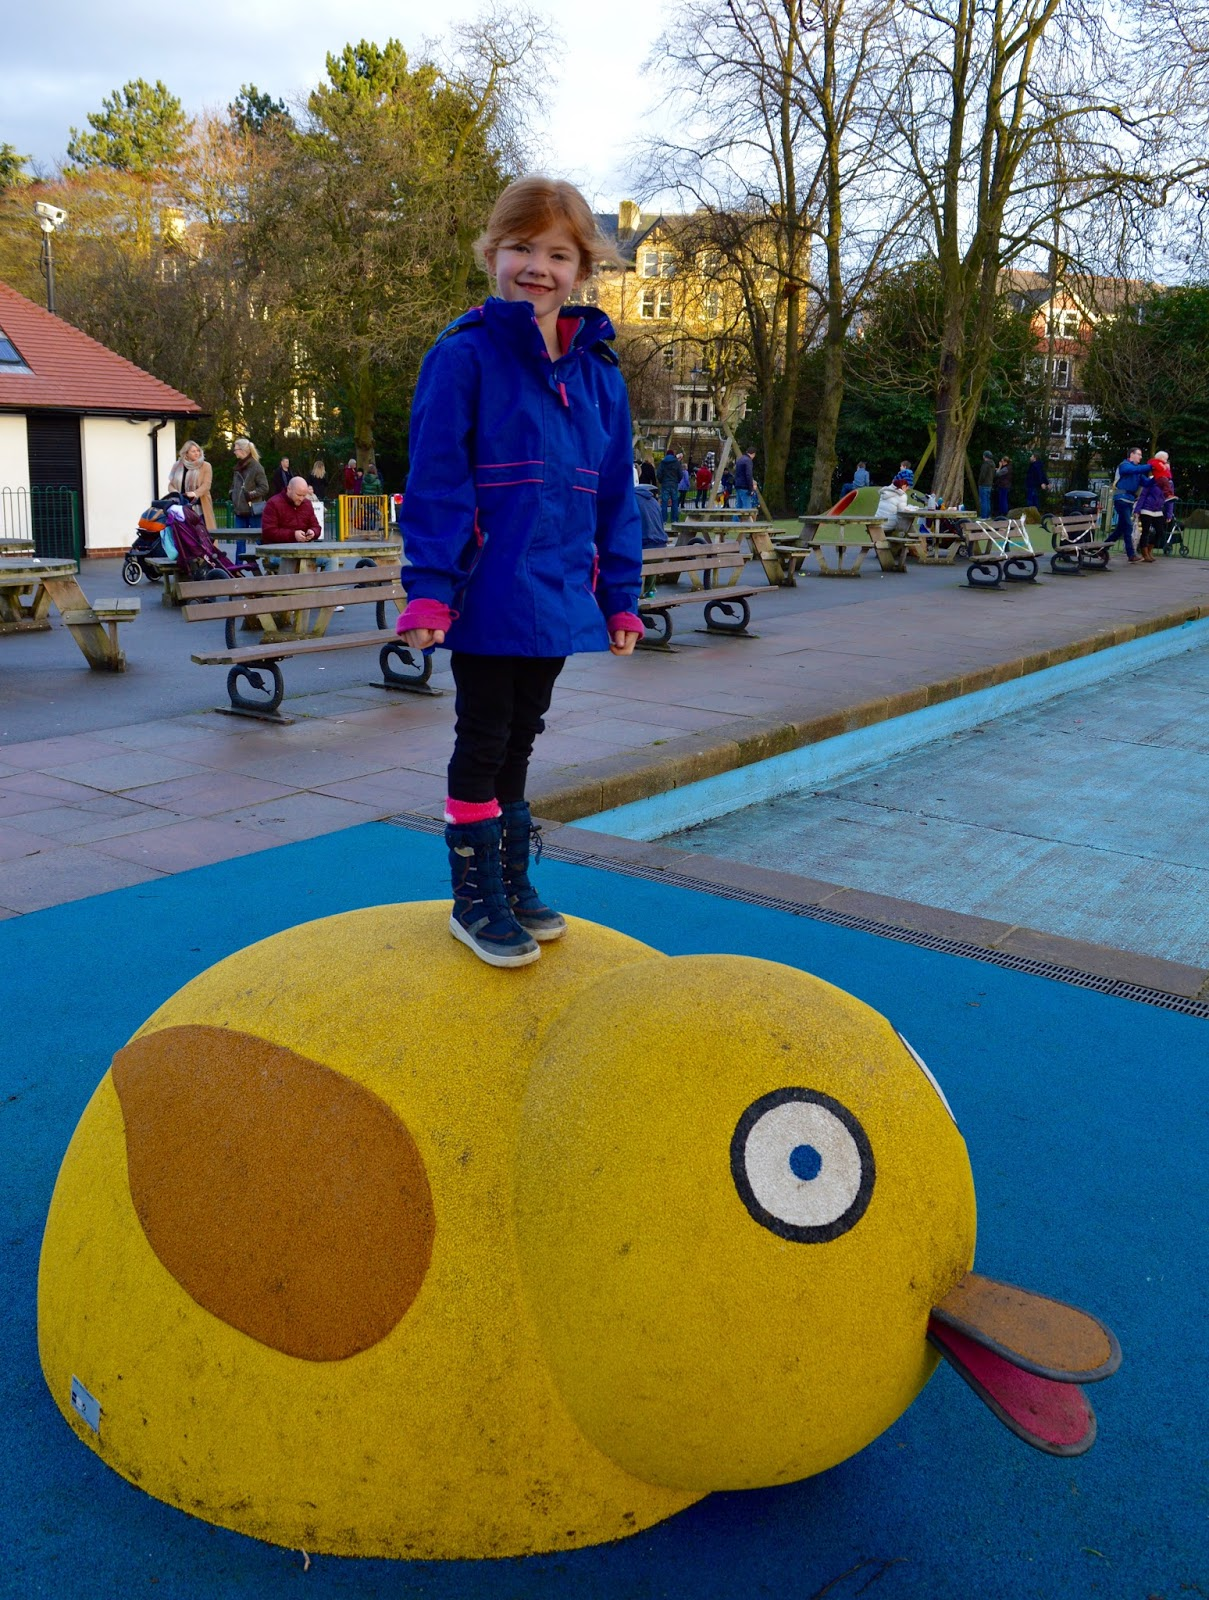 48 Hours in Harrogate with Kids | Harrogate Serviced Apartments Review - Valley Gardens Play park